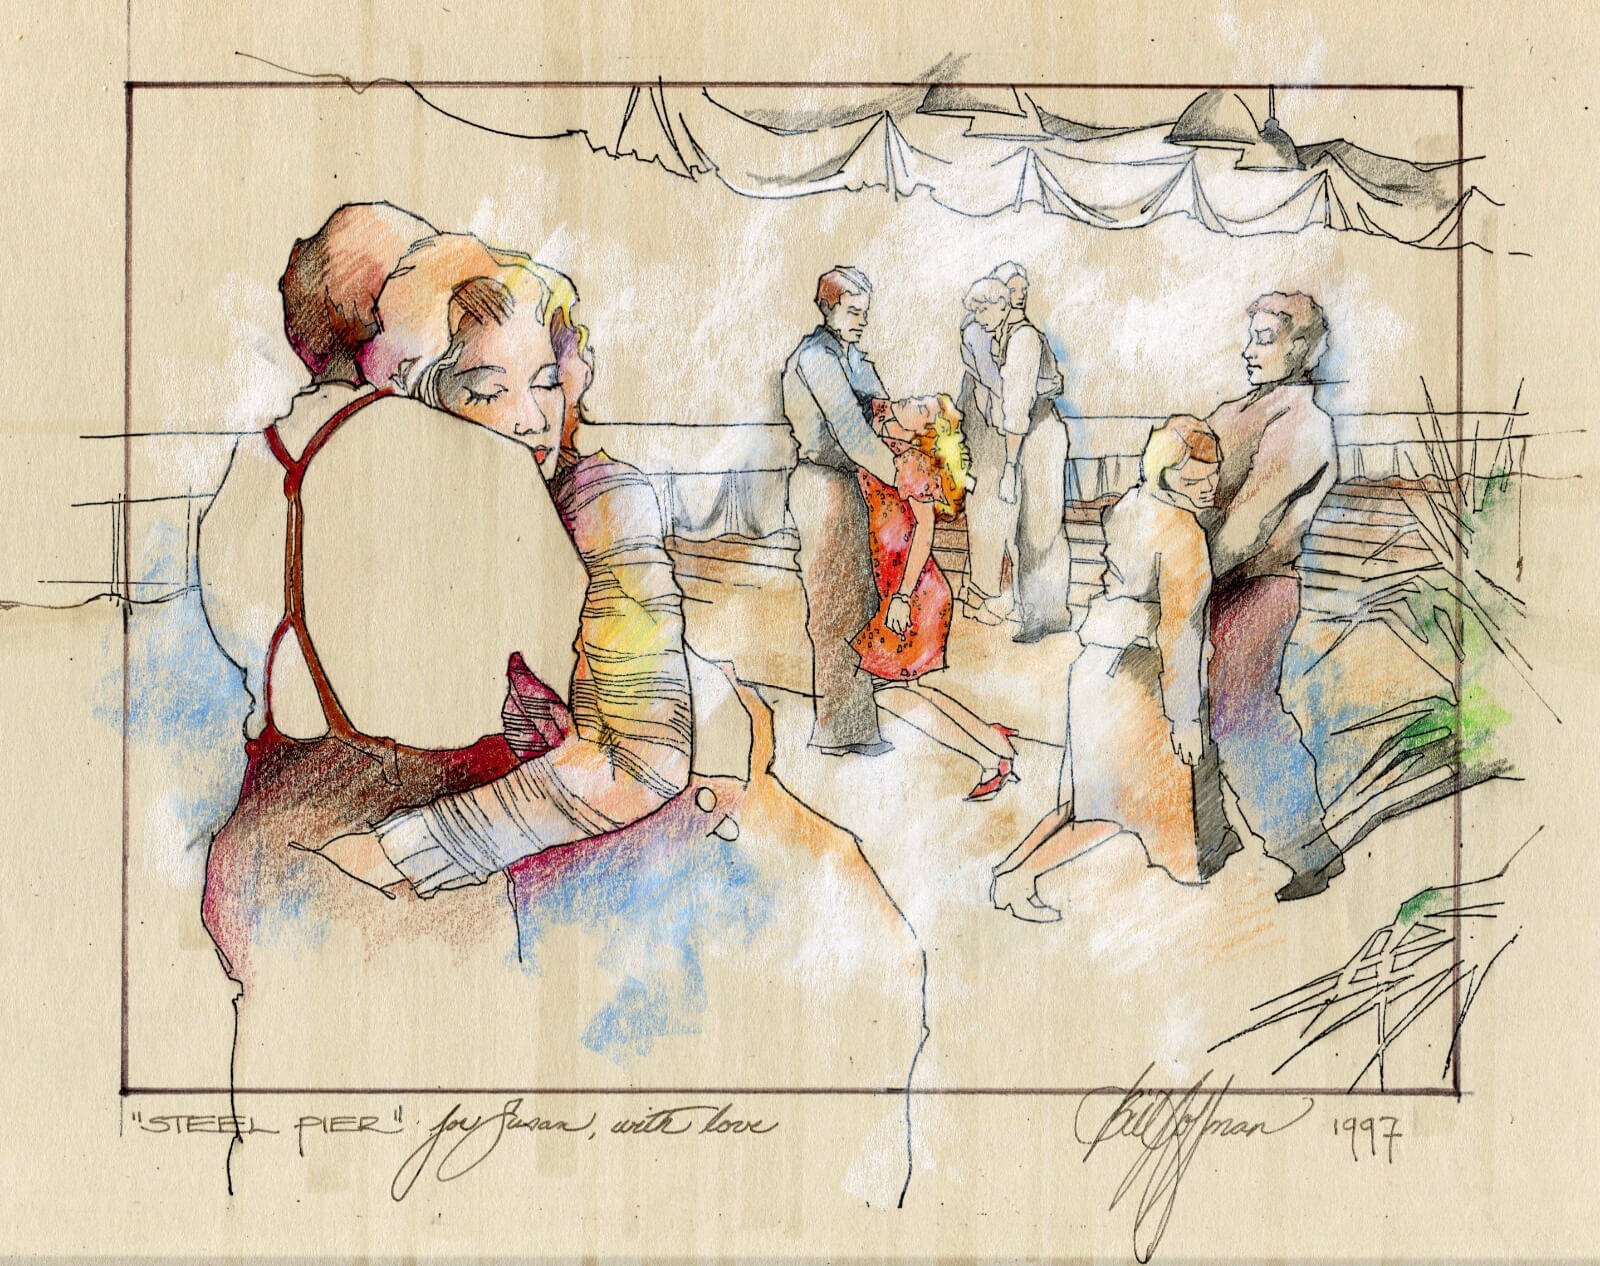 Illustration by Bill Hoffman showing exhausted dance couples passing out in each others arms.